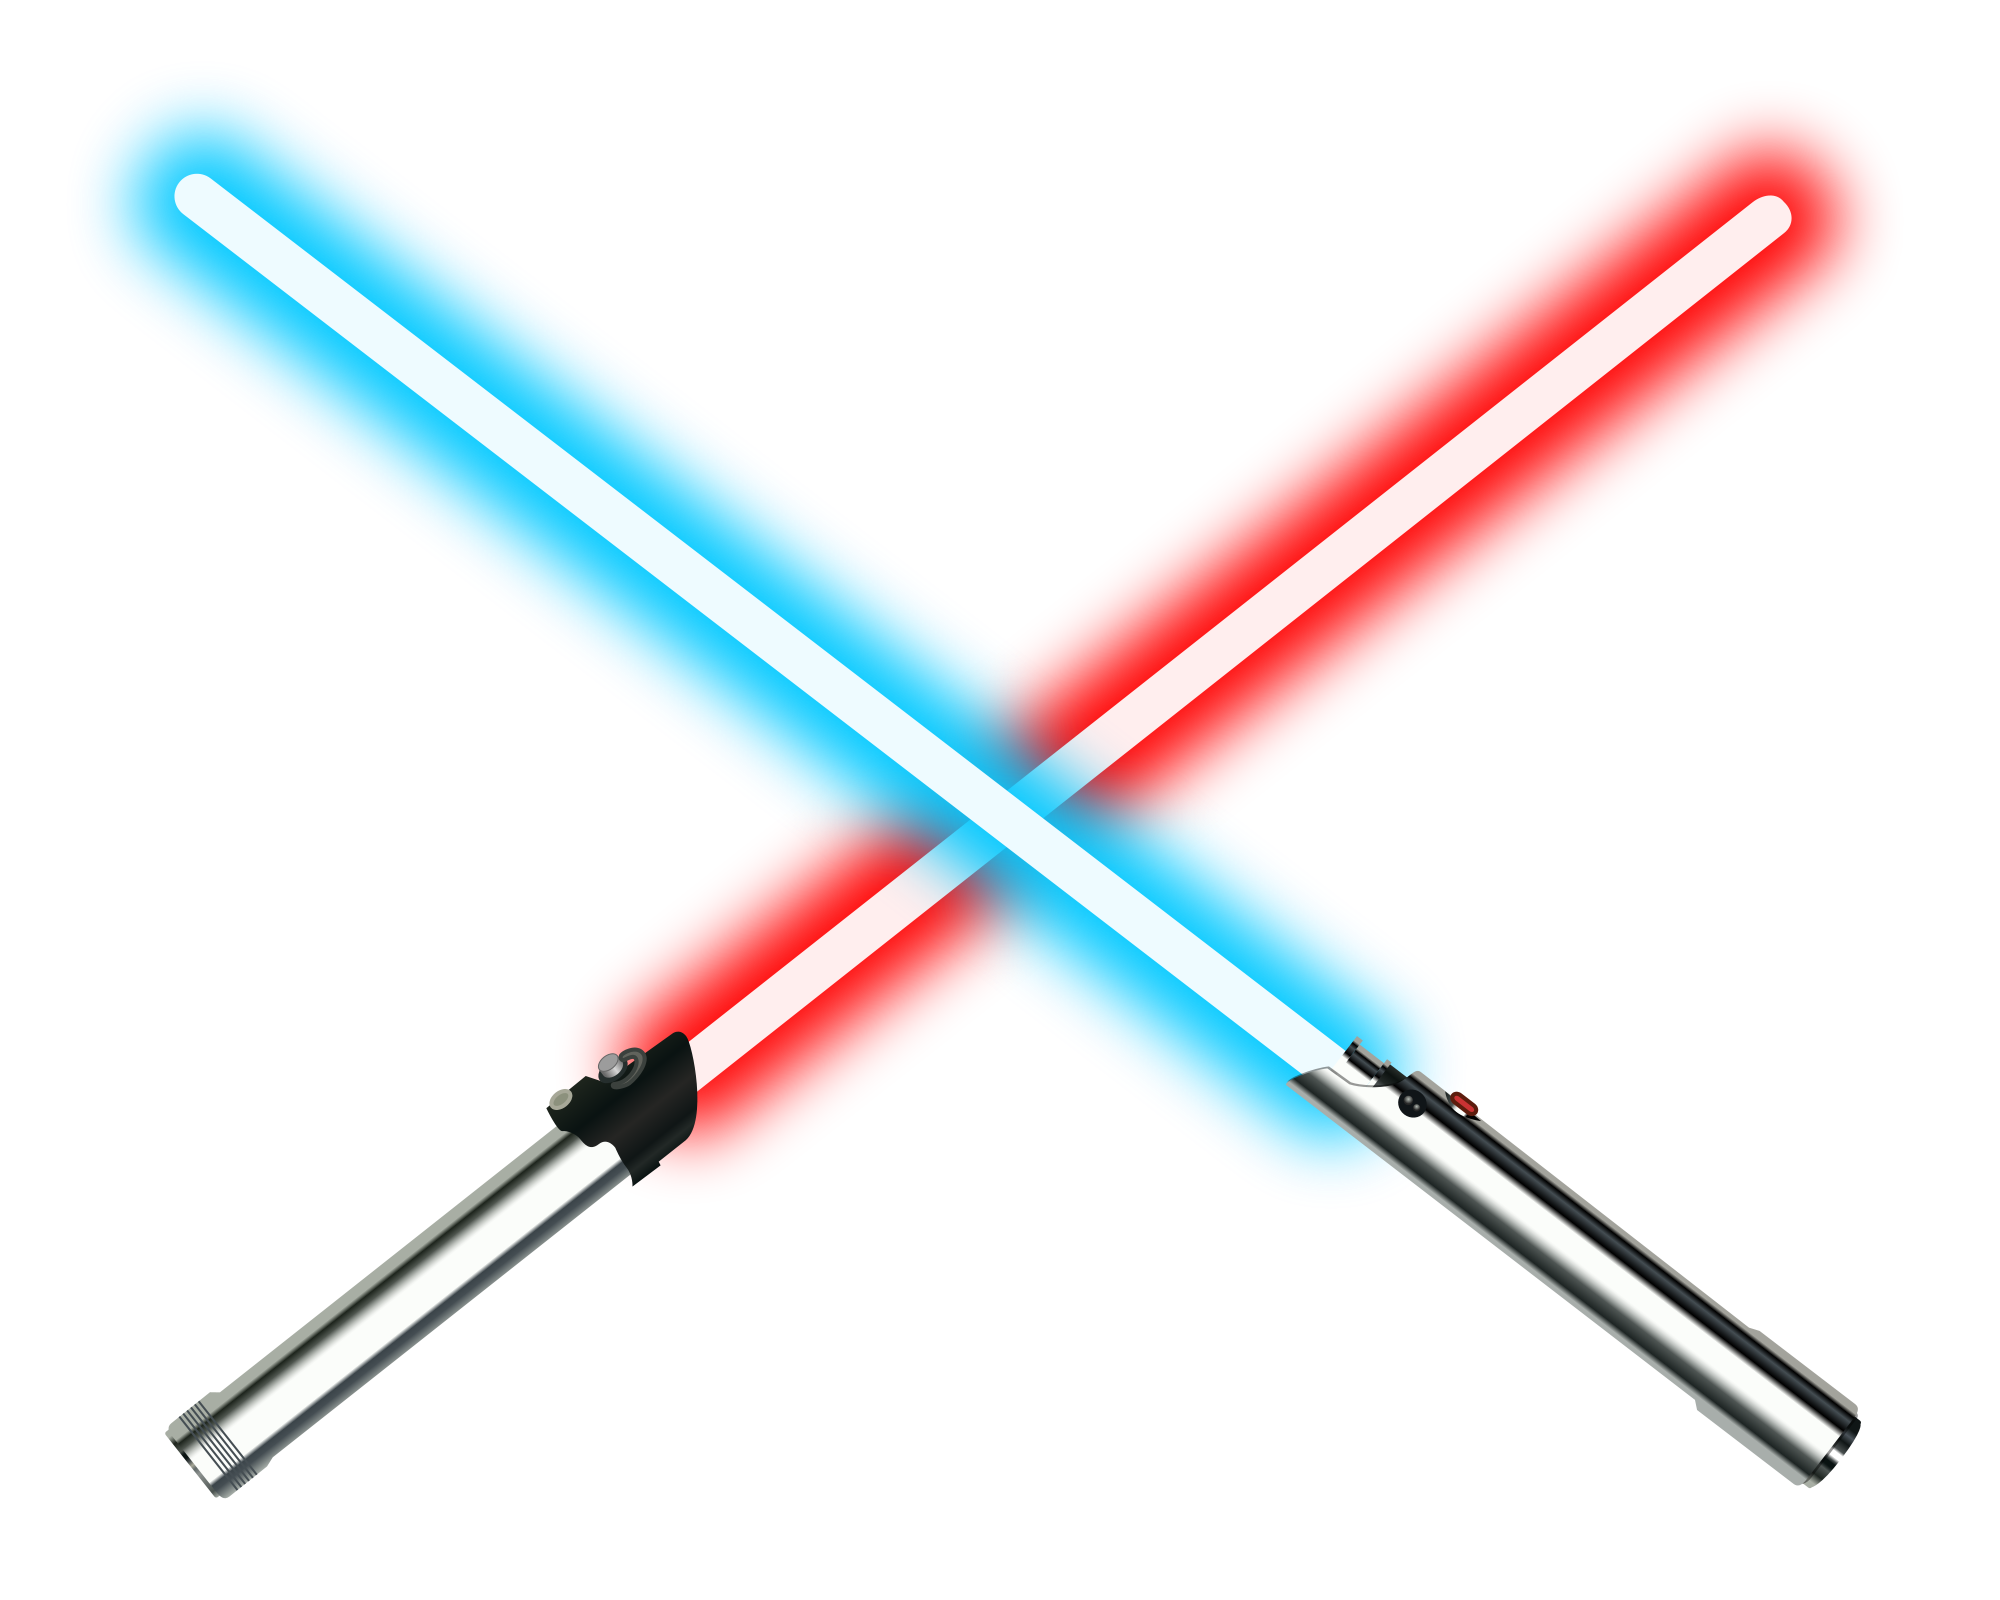 Laser sword clipart - Clipground